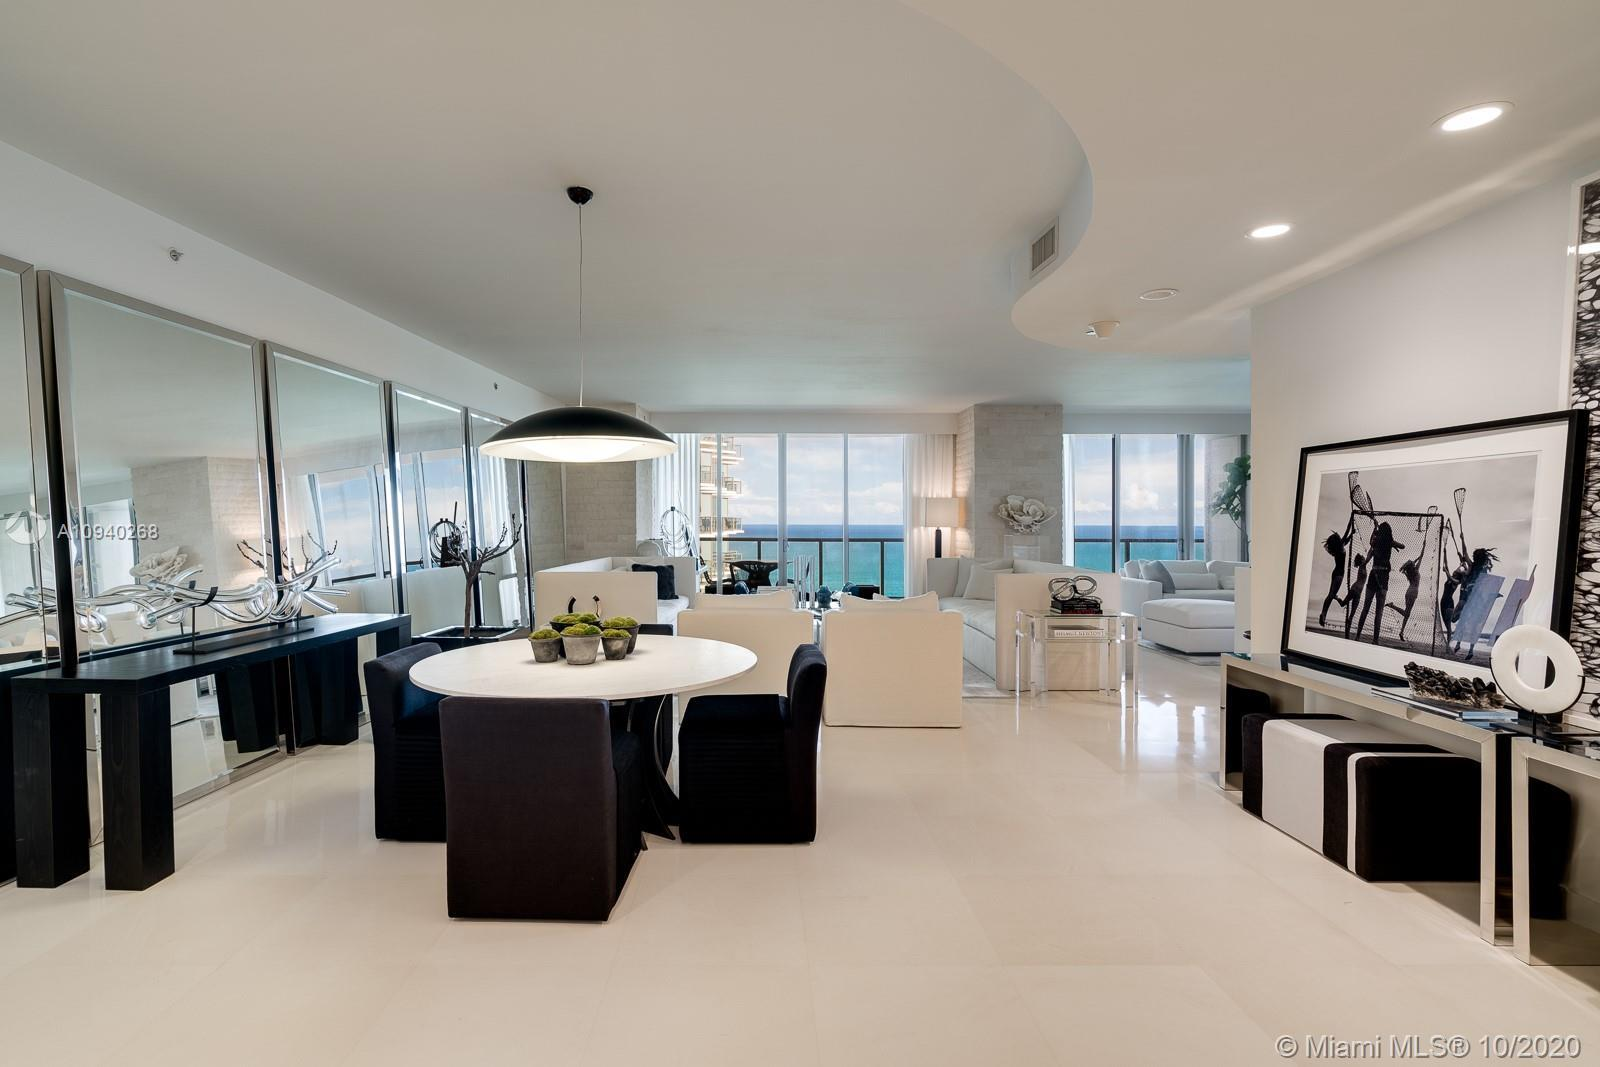 Immaculate Residence available at St Regis Bal Harbour. Enjoy Direct Ocean and Panoramic City/Intrac